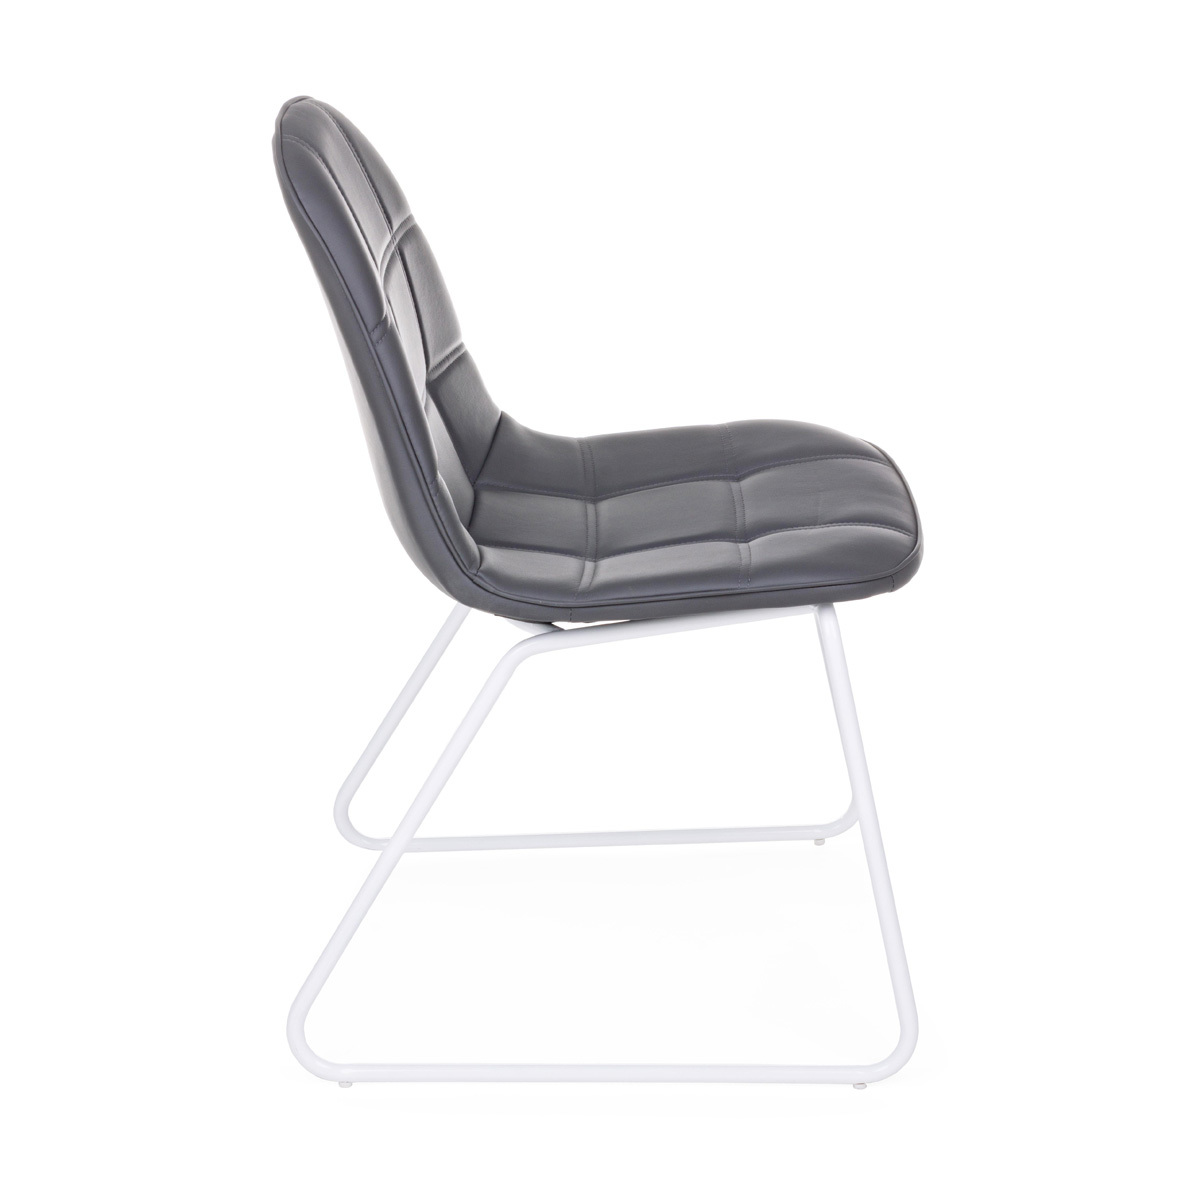 Photos 2: Bizzotto Chair in metal and eco-leather - anthracite 0731709